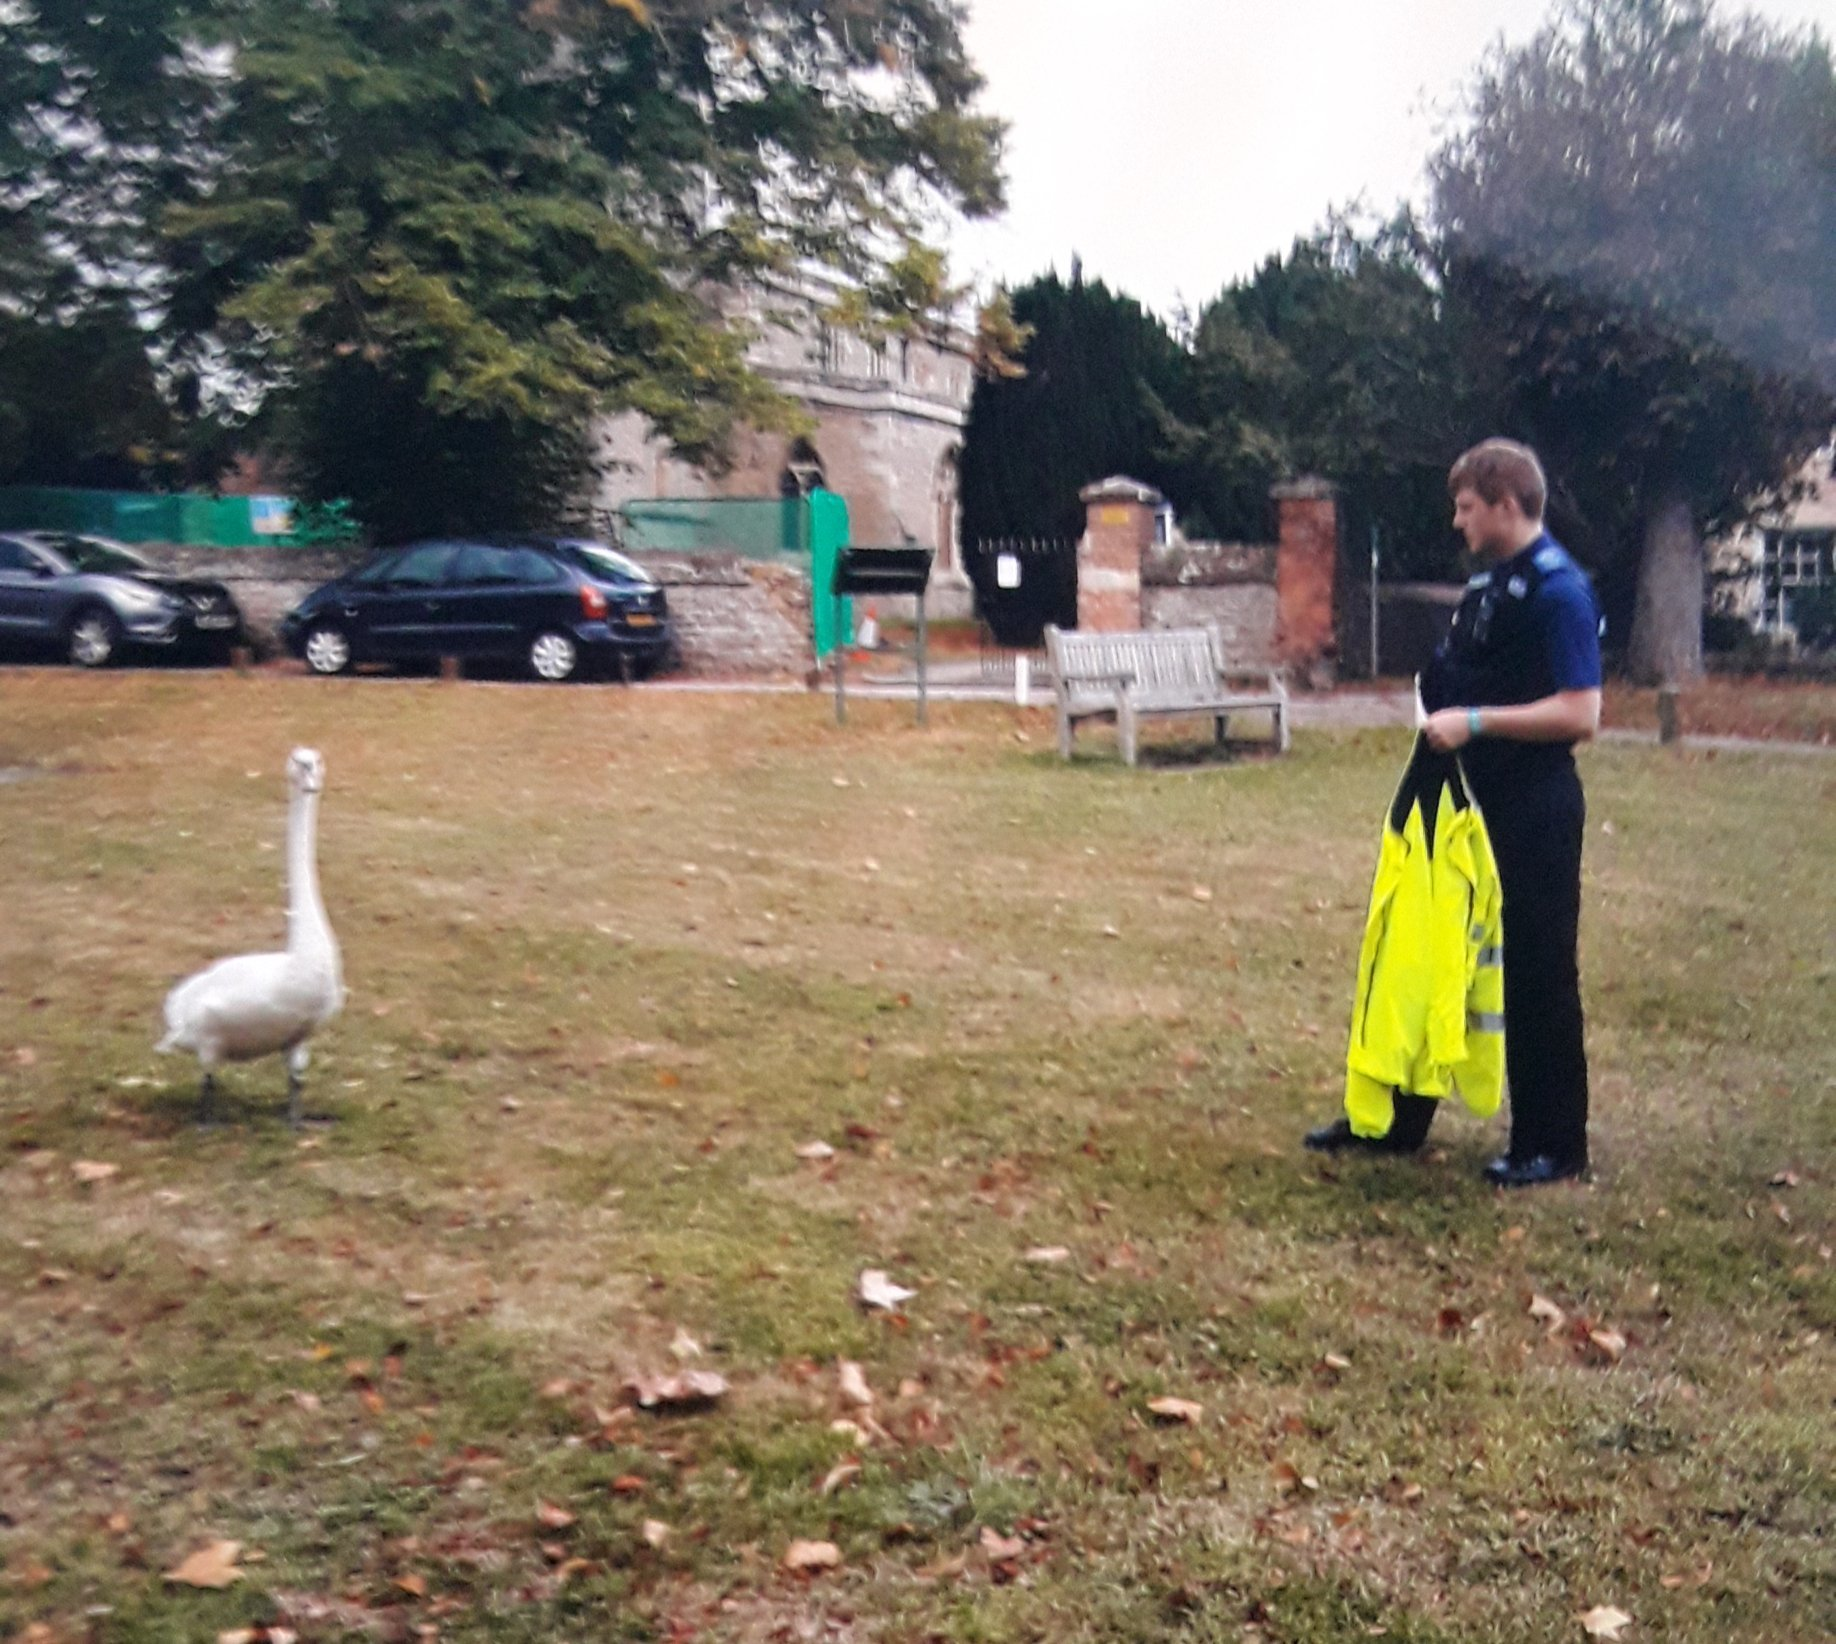 Hot Fuzz moment as police catch swan in Sutton Courtenay